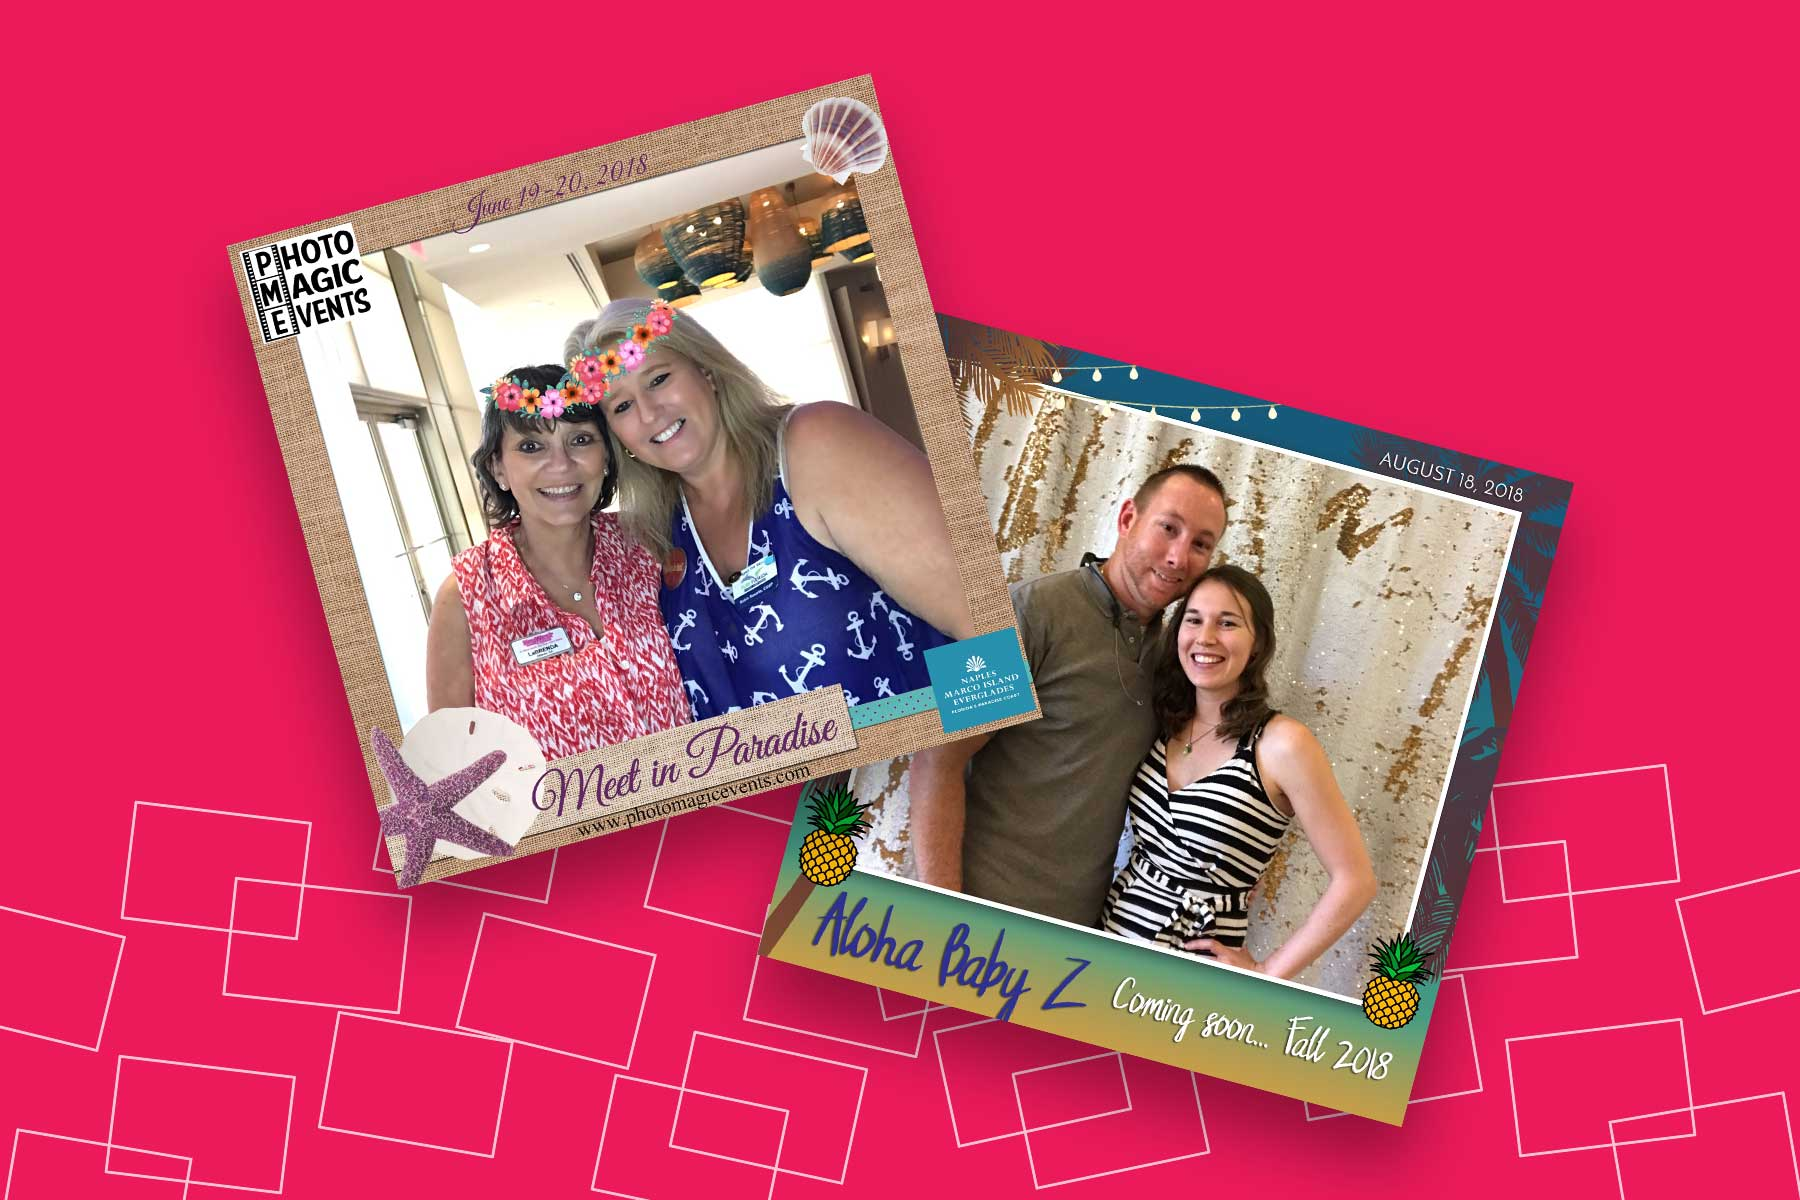 Selfie Print Station Rentals with Custom Instagram Style Photo Frames | Photo Magic Events, A SWFL Photo Booth & Event Rental Company